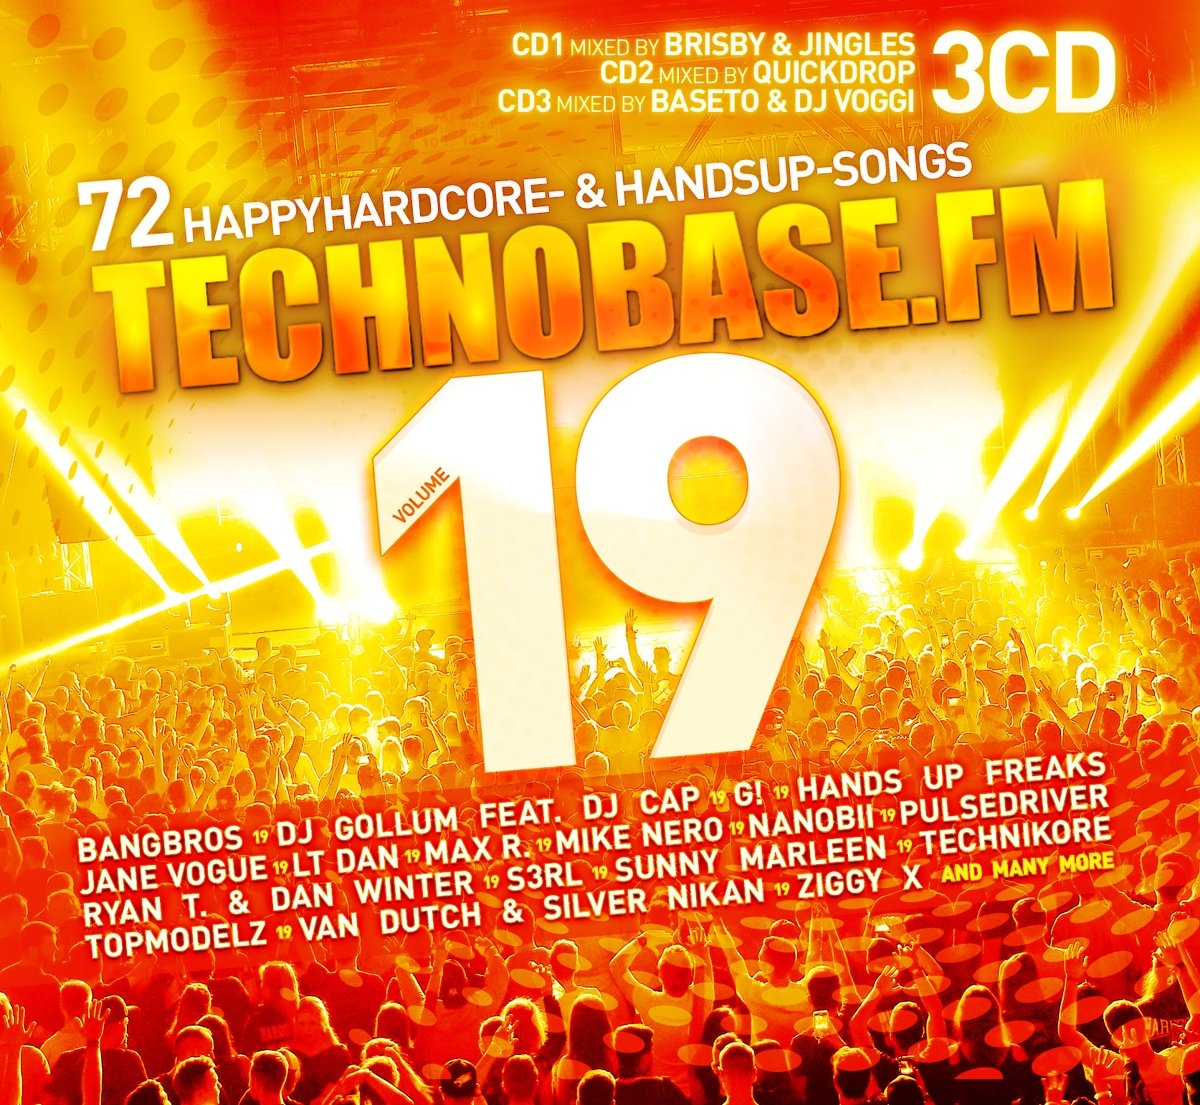 VA - Technobase.FM Volume 19 - 3CD - FLAC - 2018 - VOLDiES Download